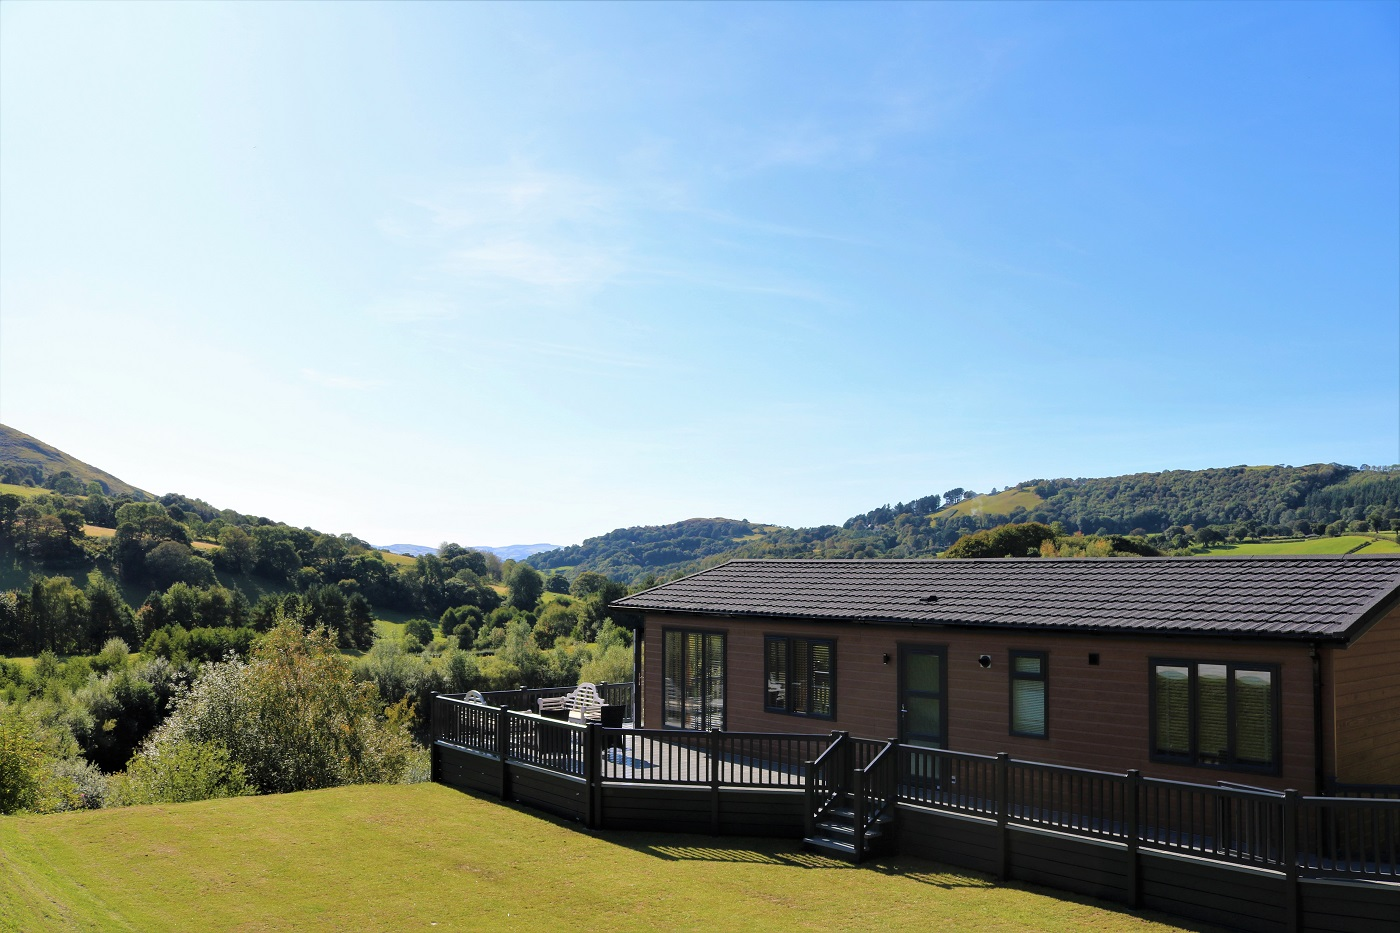 Luxury Lodge The Llewellyn Maes Mynan Park, North Wales